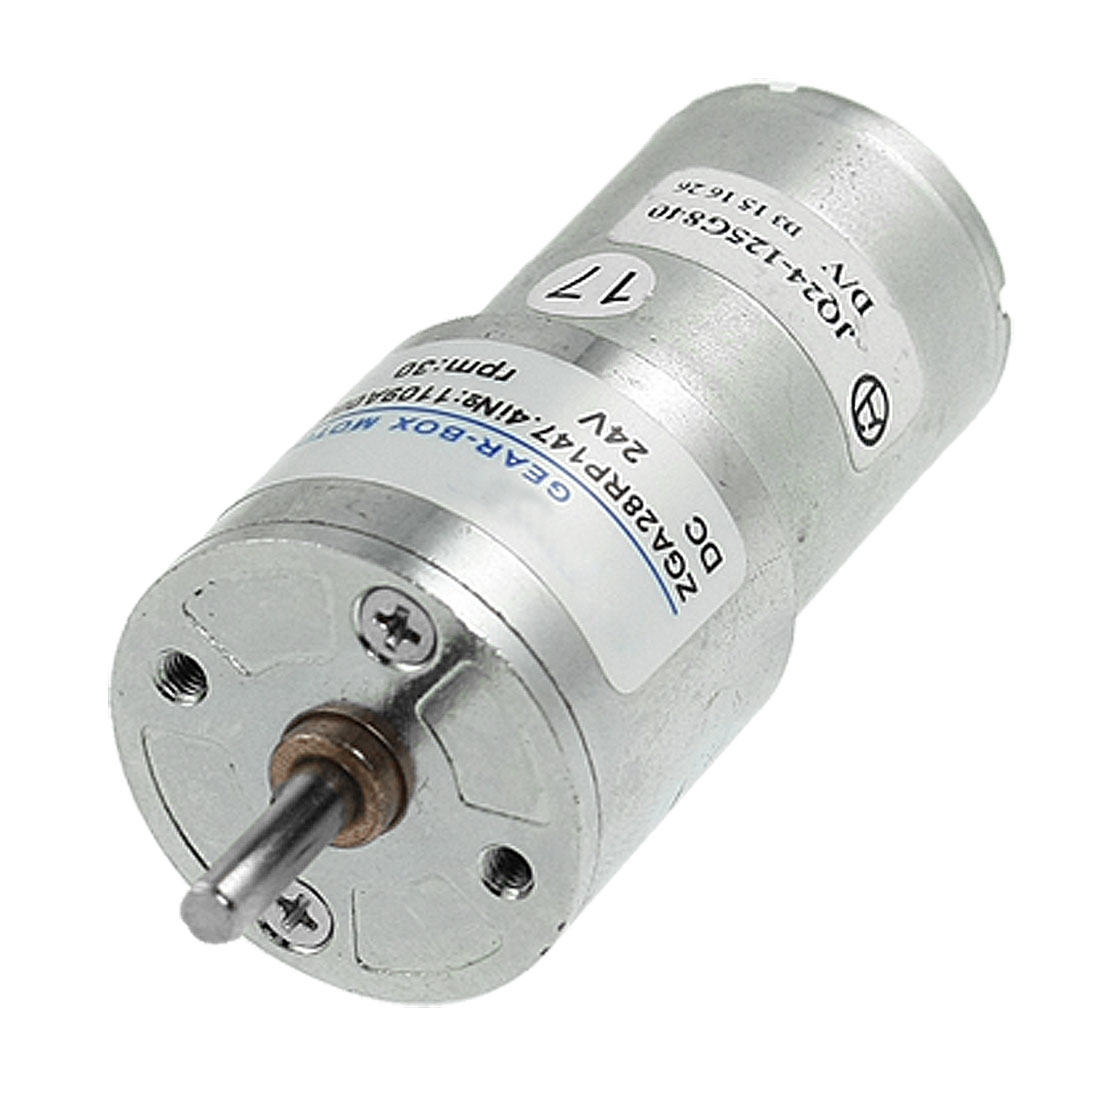 30RPM Output Speed 28mm Diameter 24V 0.13A DC Geared Motor